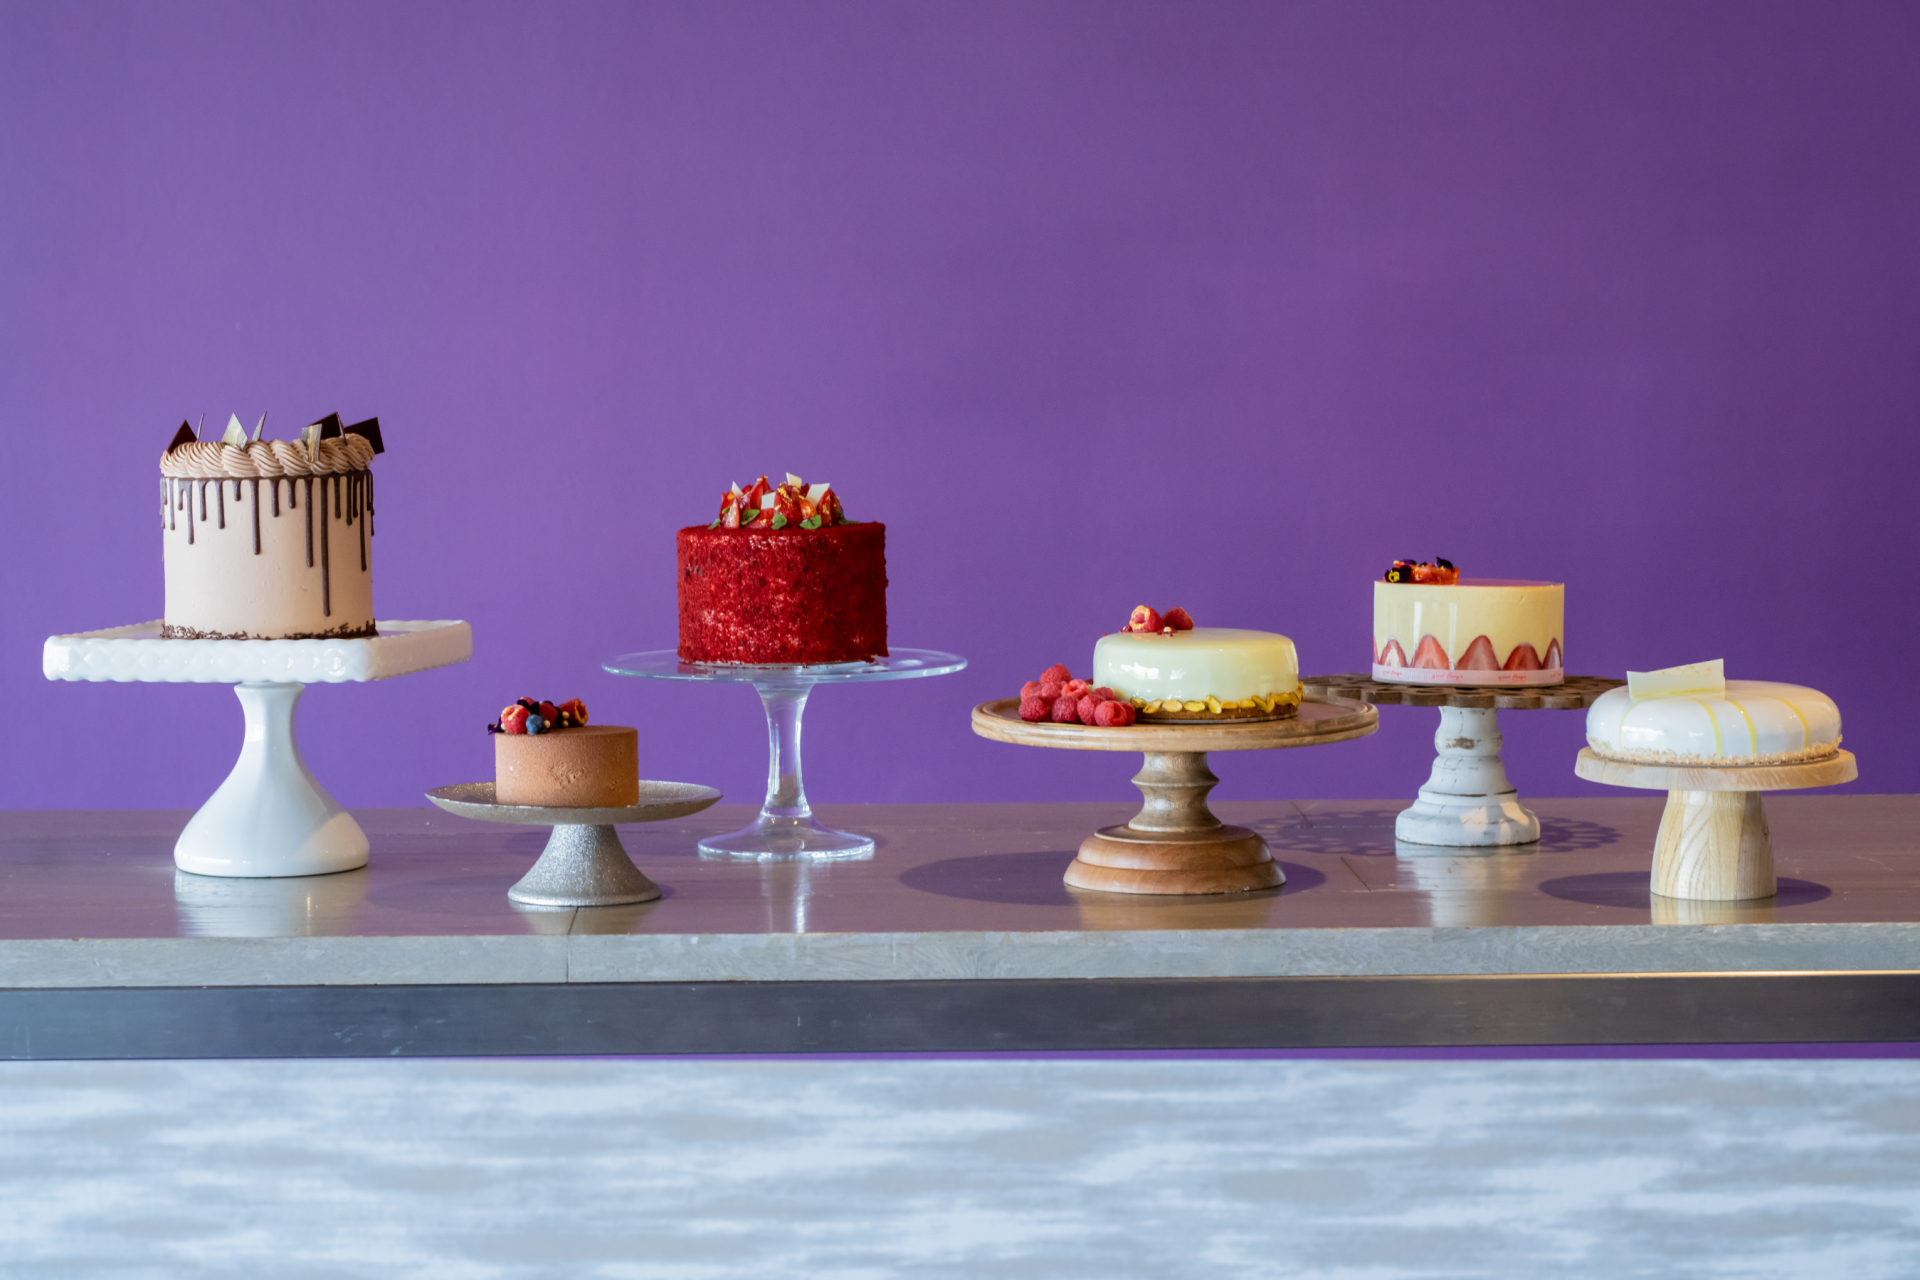 an assortment of six gourmet cakes on cake stands with a purple background